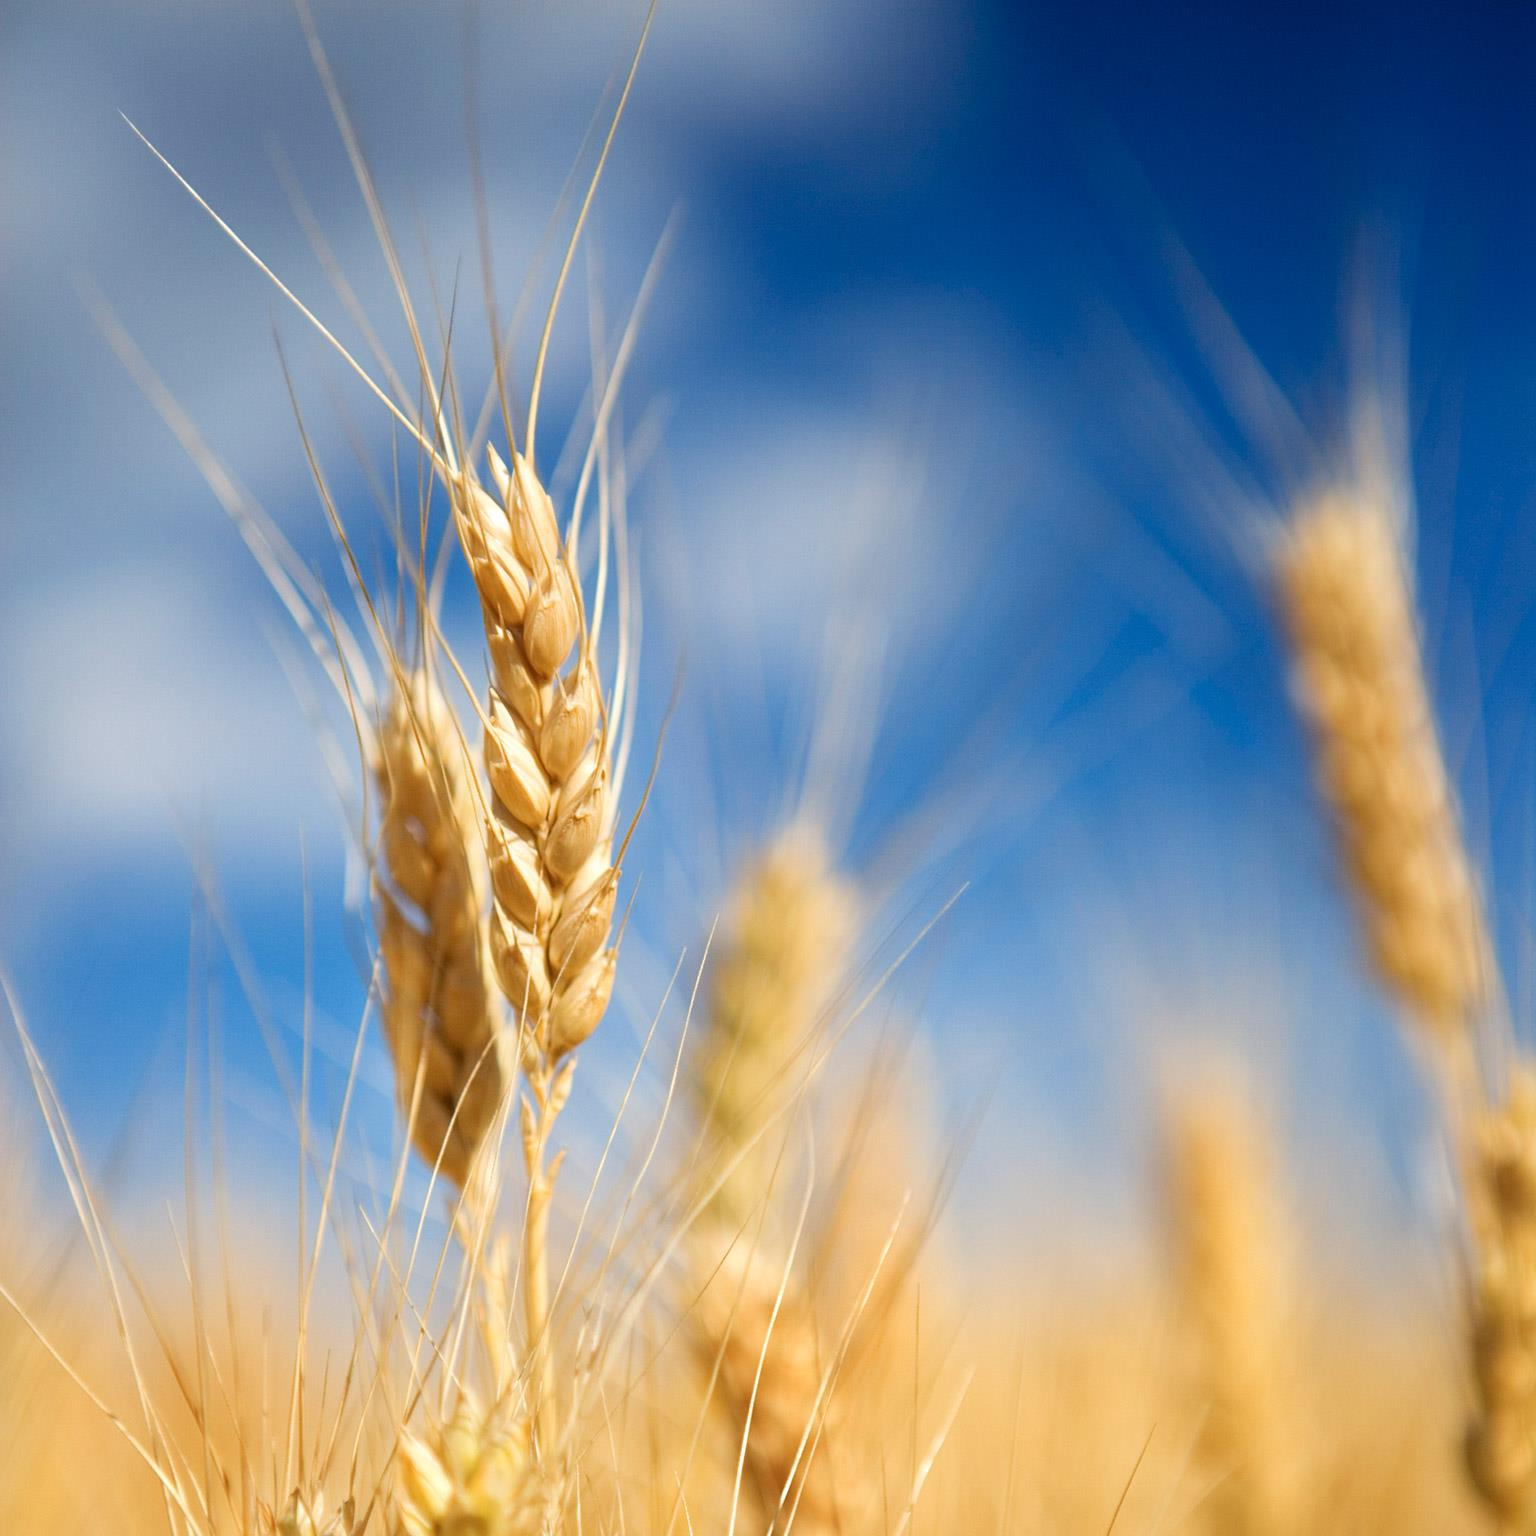 How big data will revolutionize the global food chain